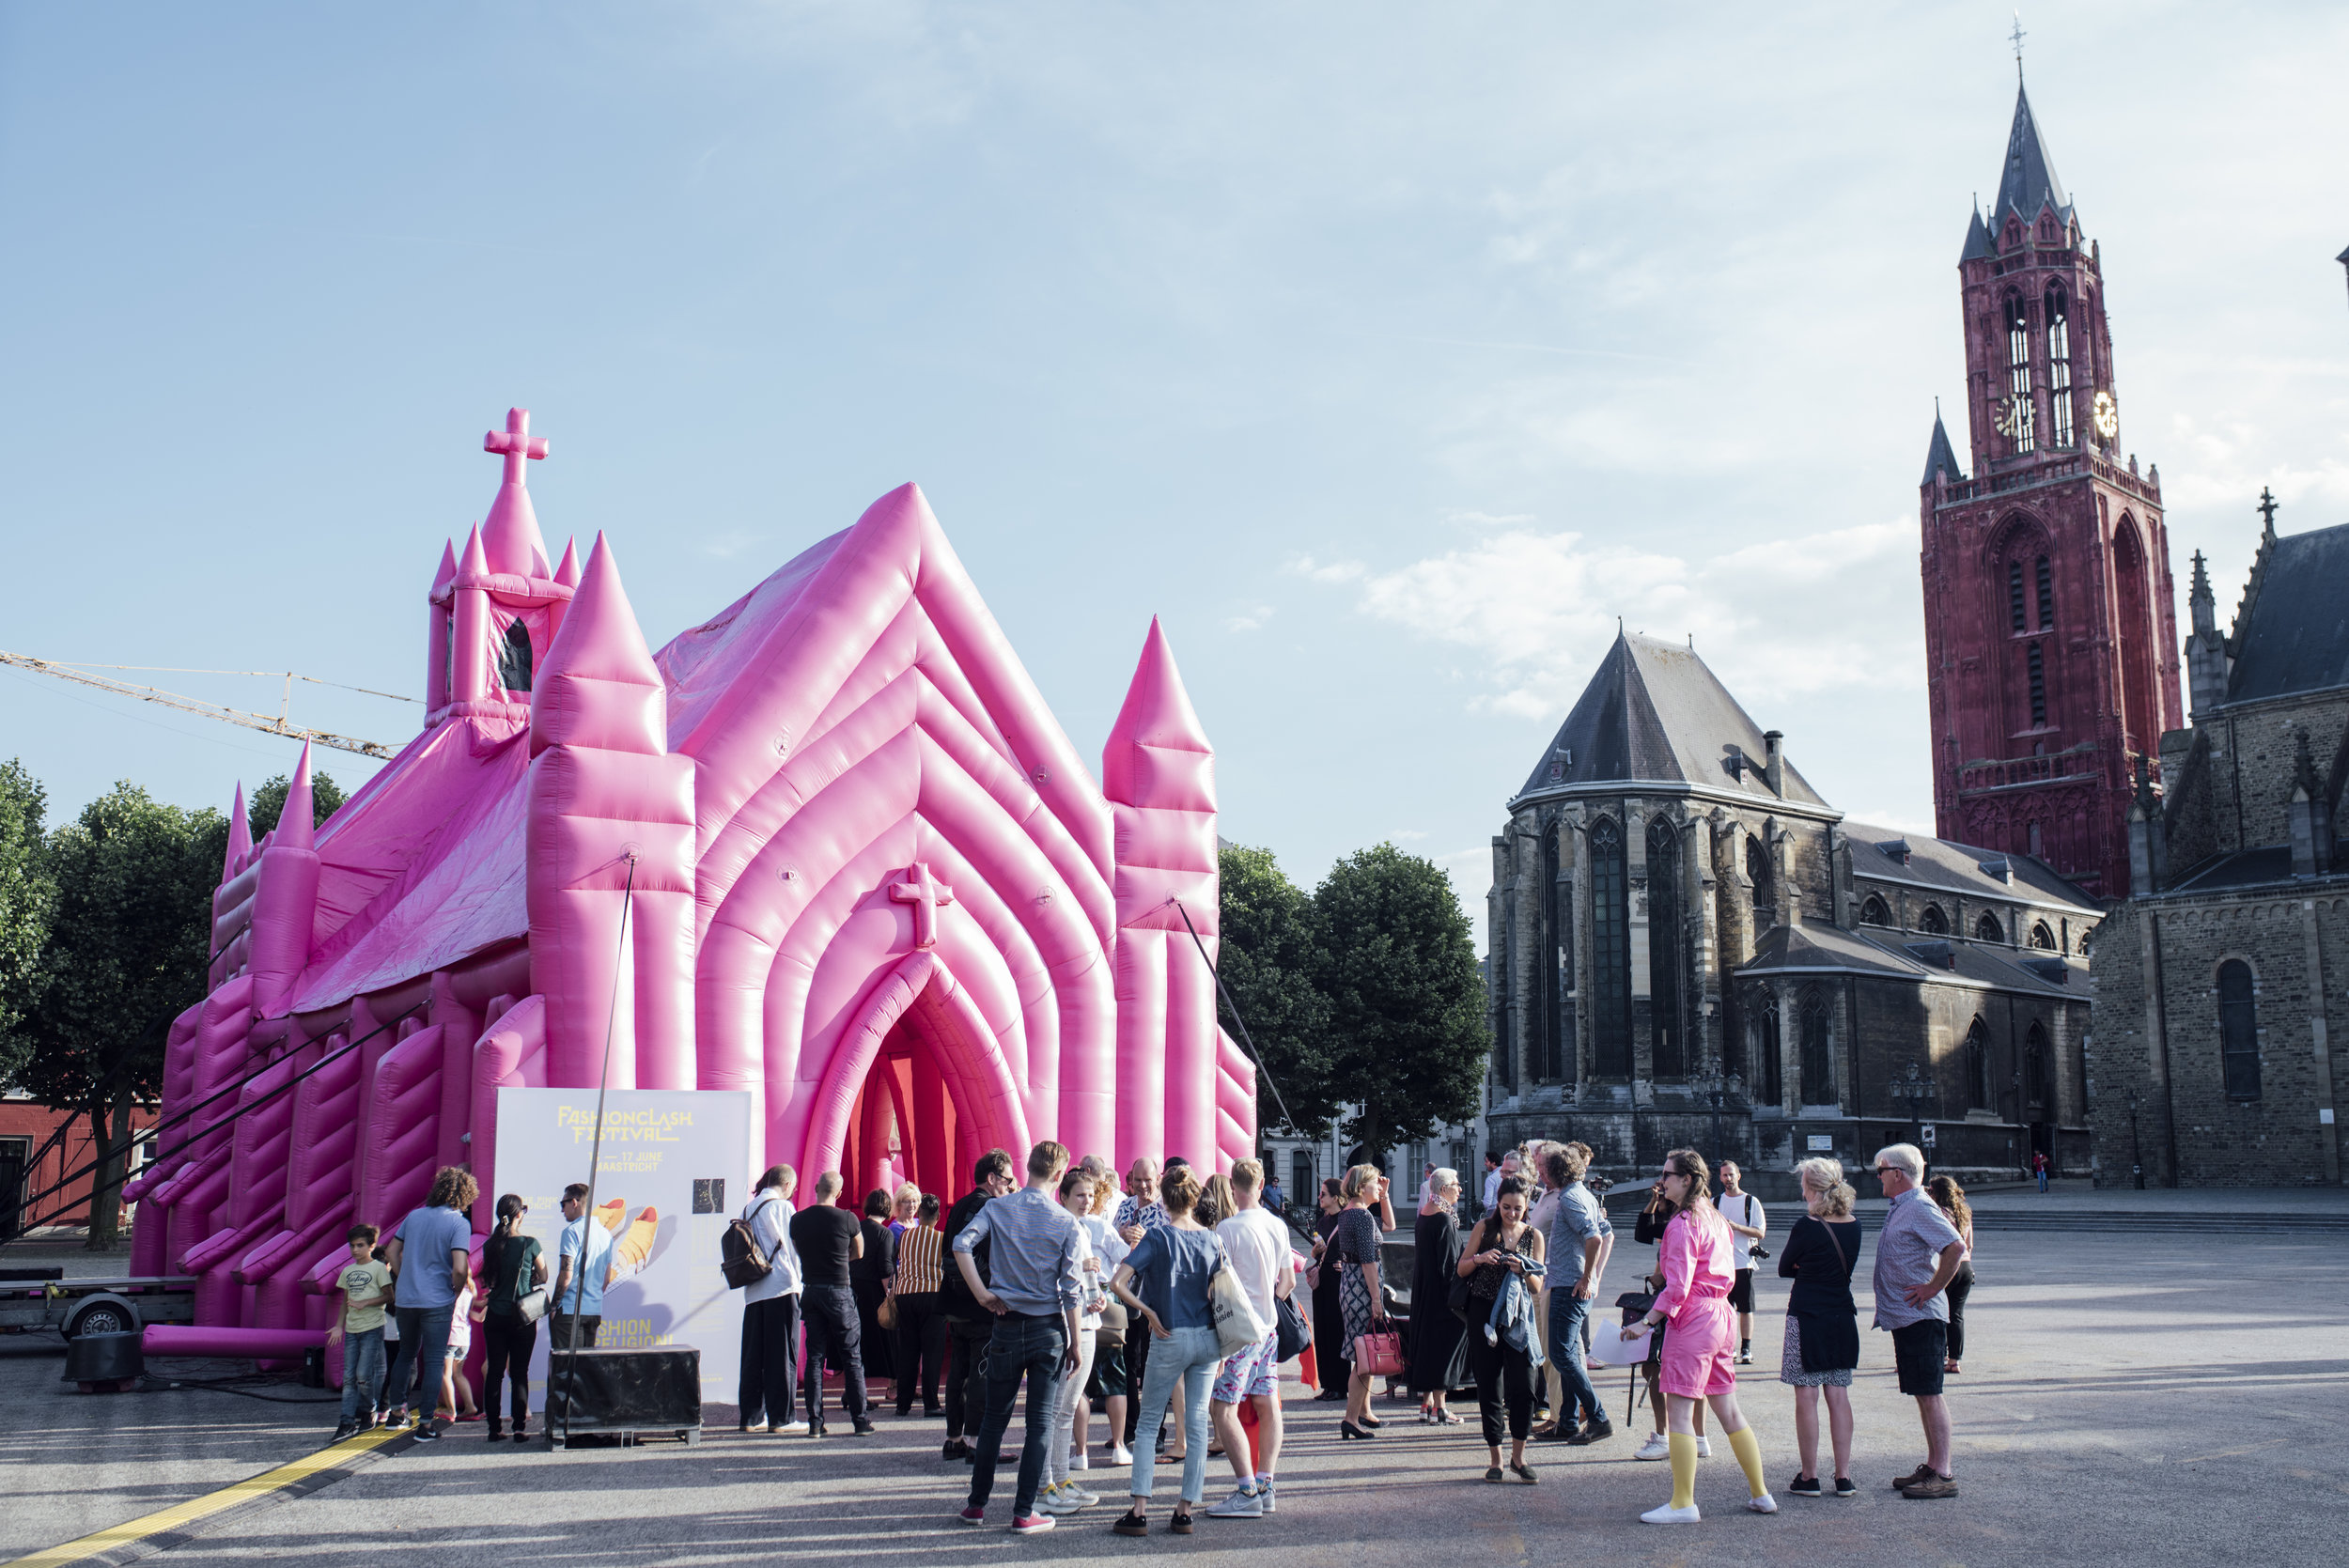 The Pink Church, by Waardengedreven_photo Ginger Bloemen_1.jpg